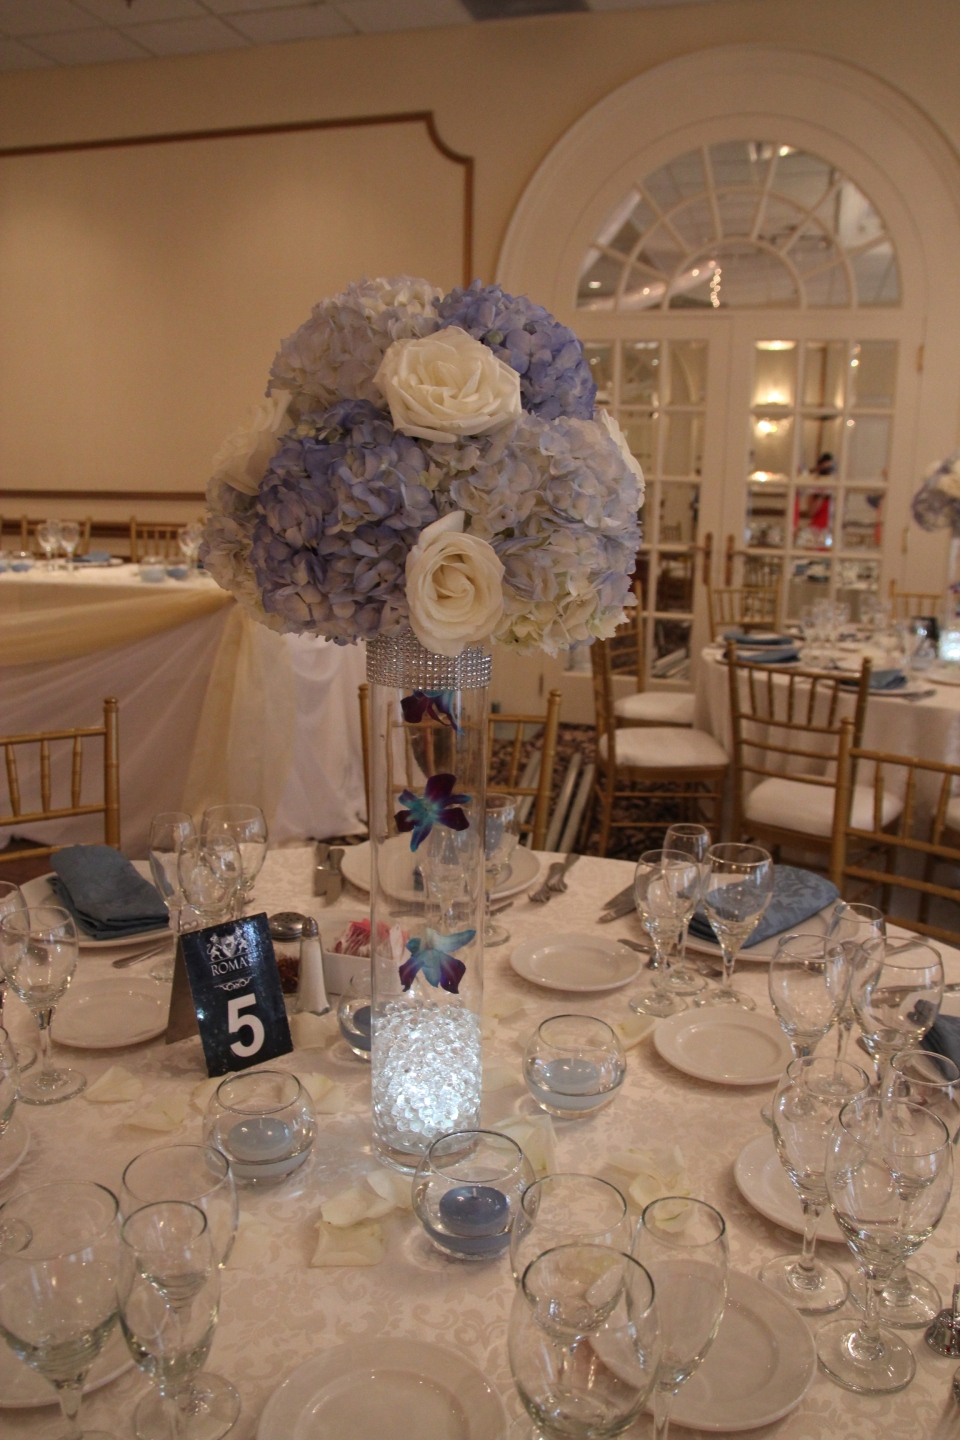 Blue and white centerpieces with suspended orchids